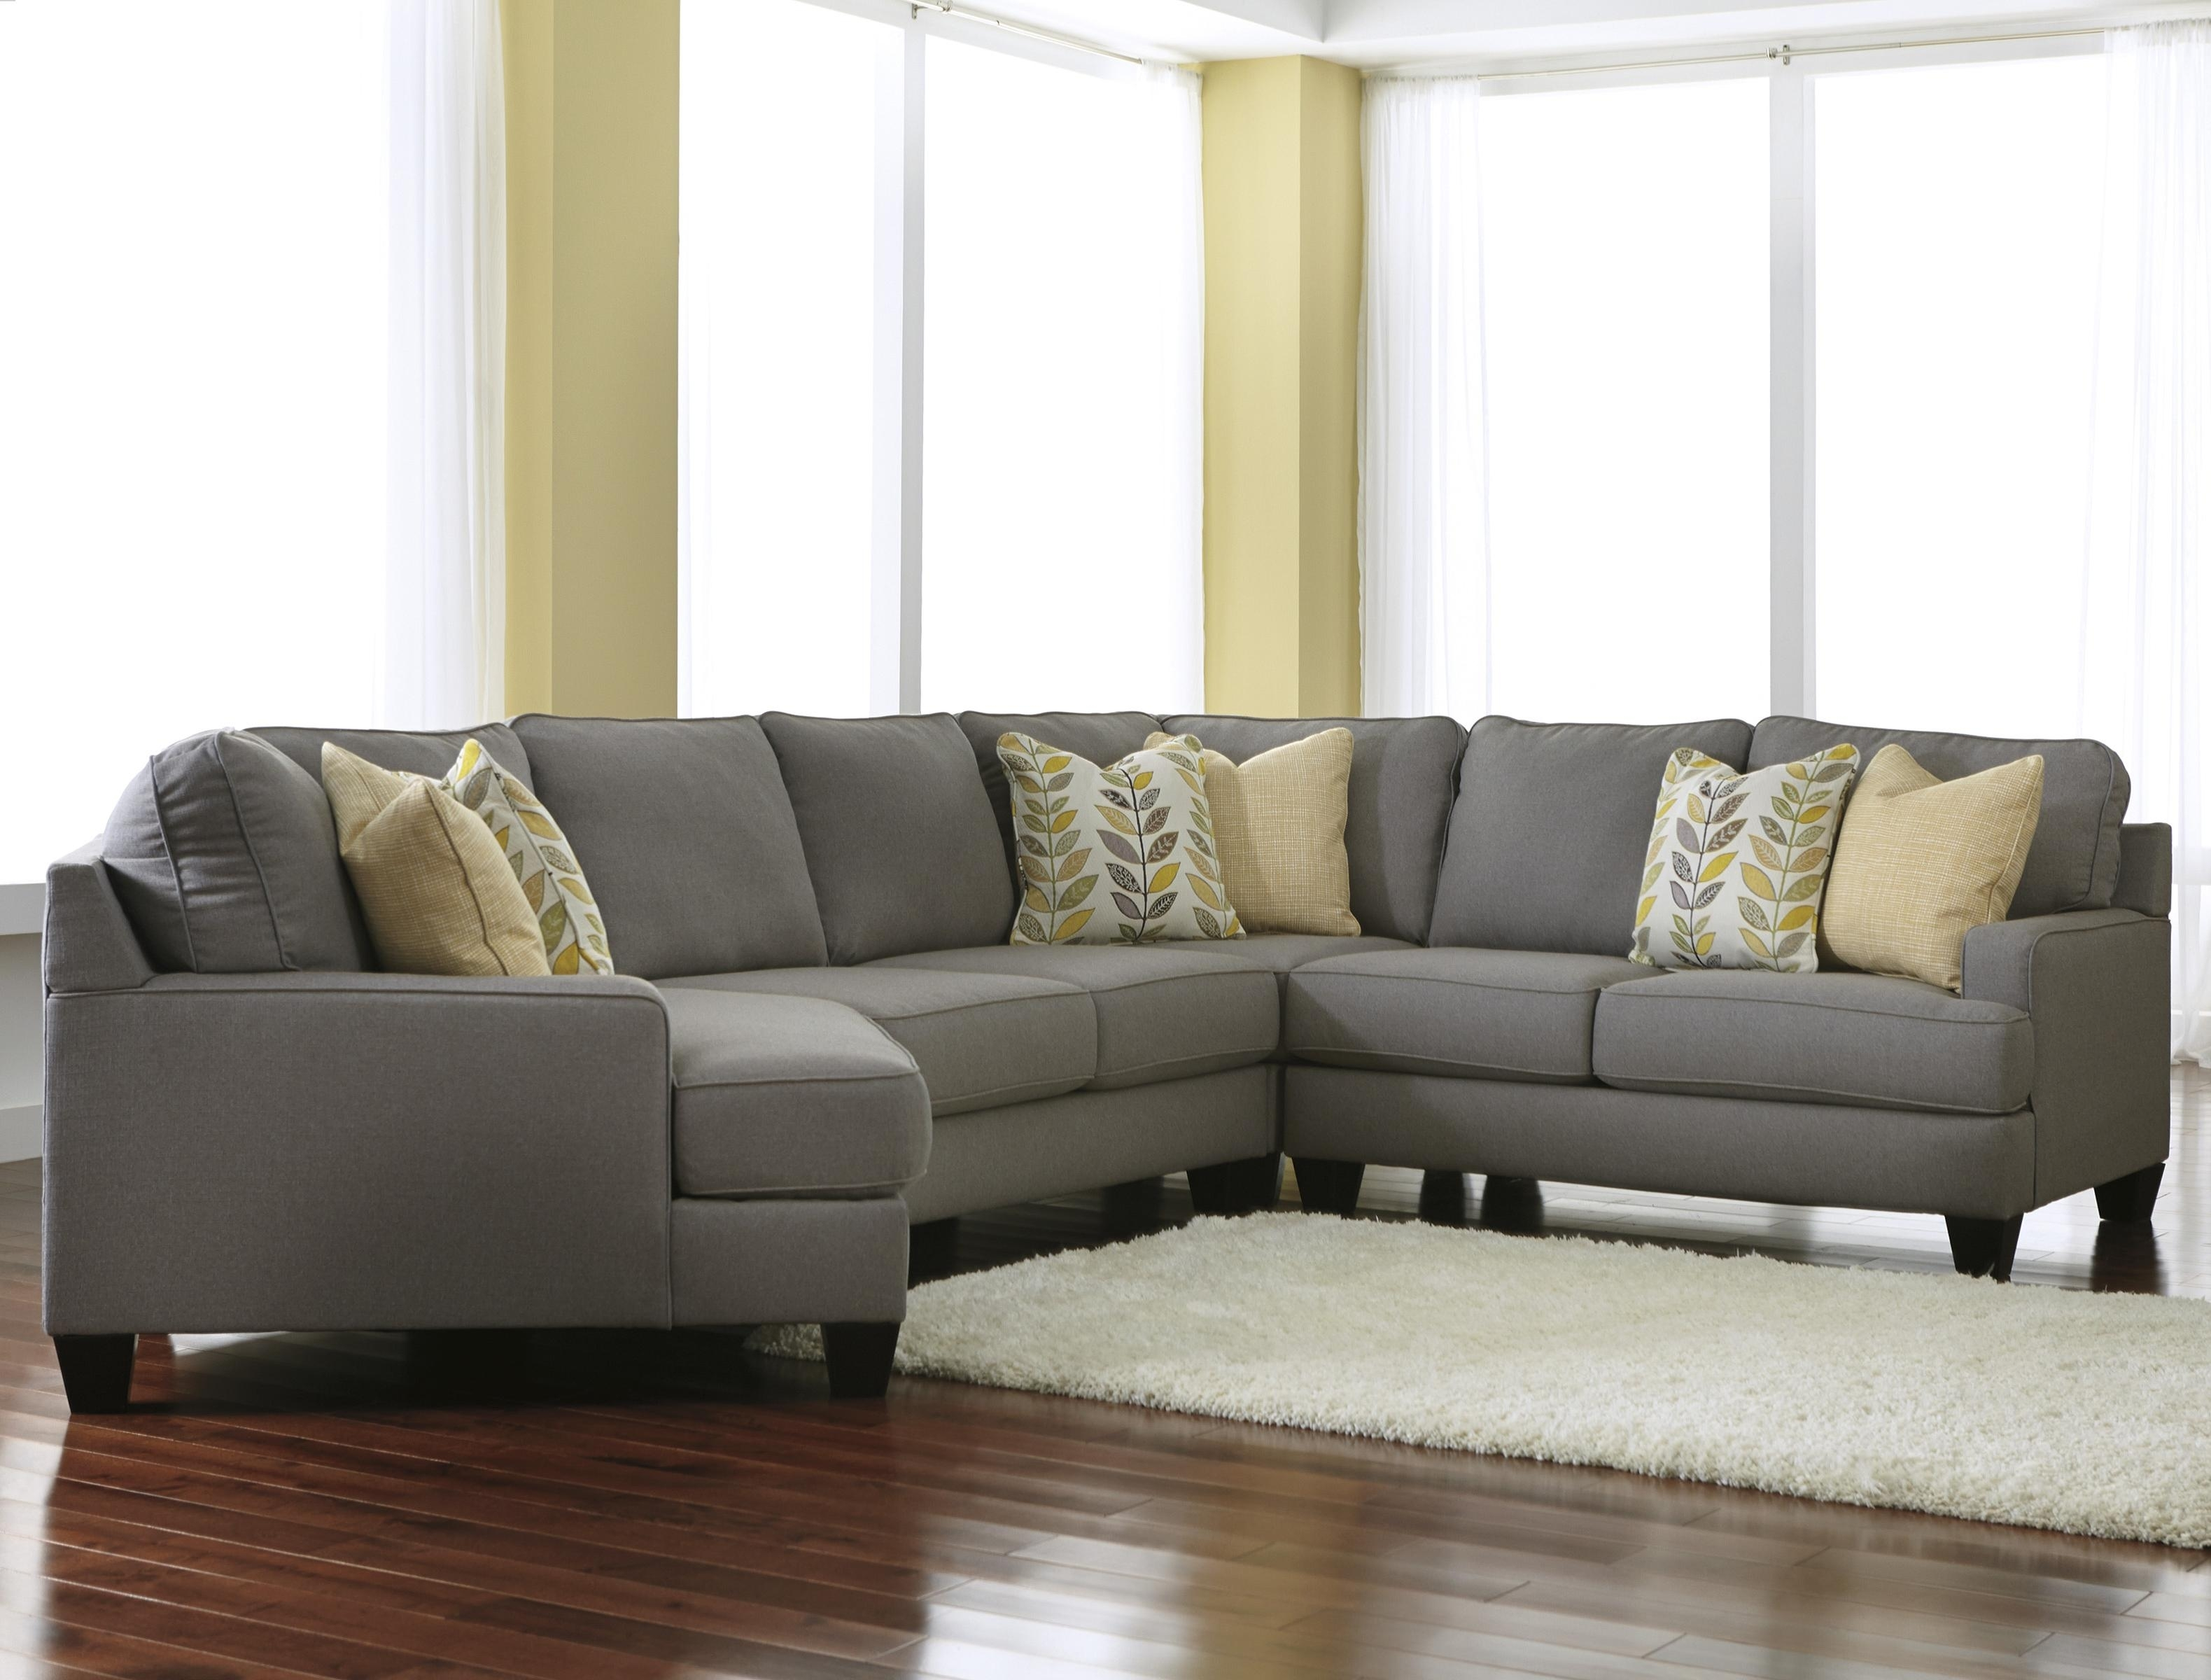 Signature Designashley Chamberly – Alloy Modern 4 Piece Pertaining To Norfolk Grey 3 Piece Sectionals With Laf Chaise (Image 23 of 25)